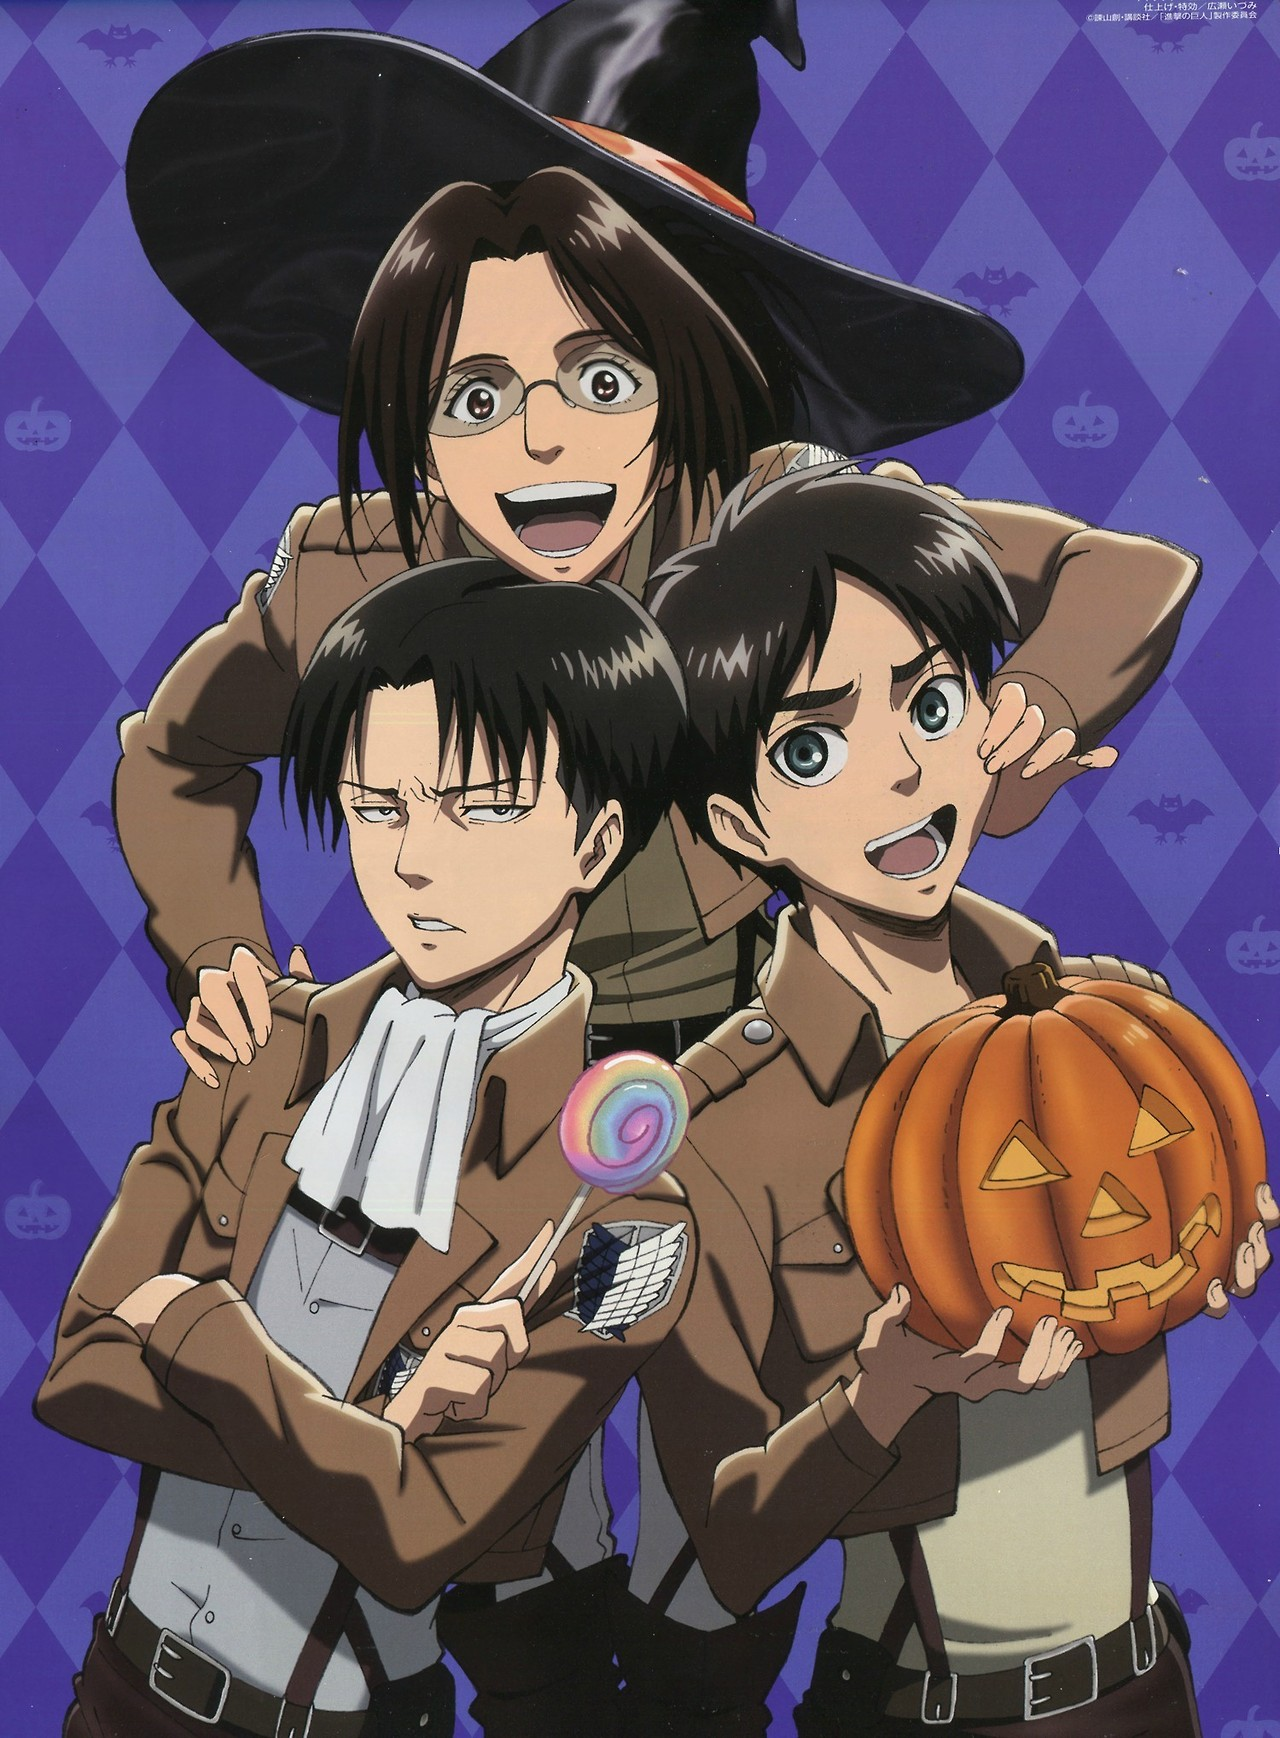 Attack on Titan, Official Art   page 10 - Zerochan Anime ...